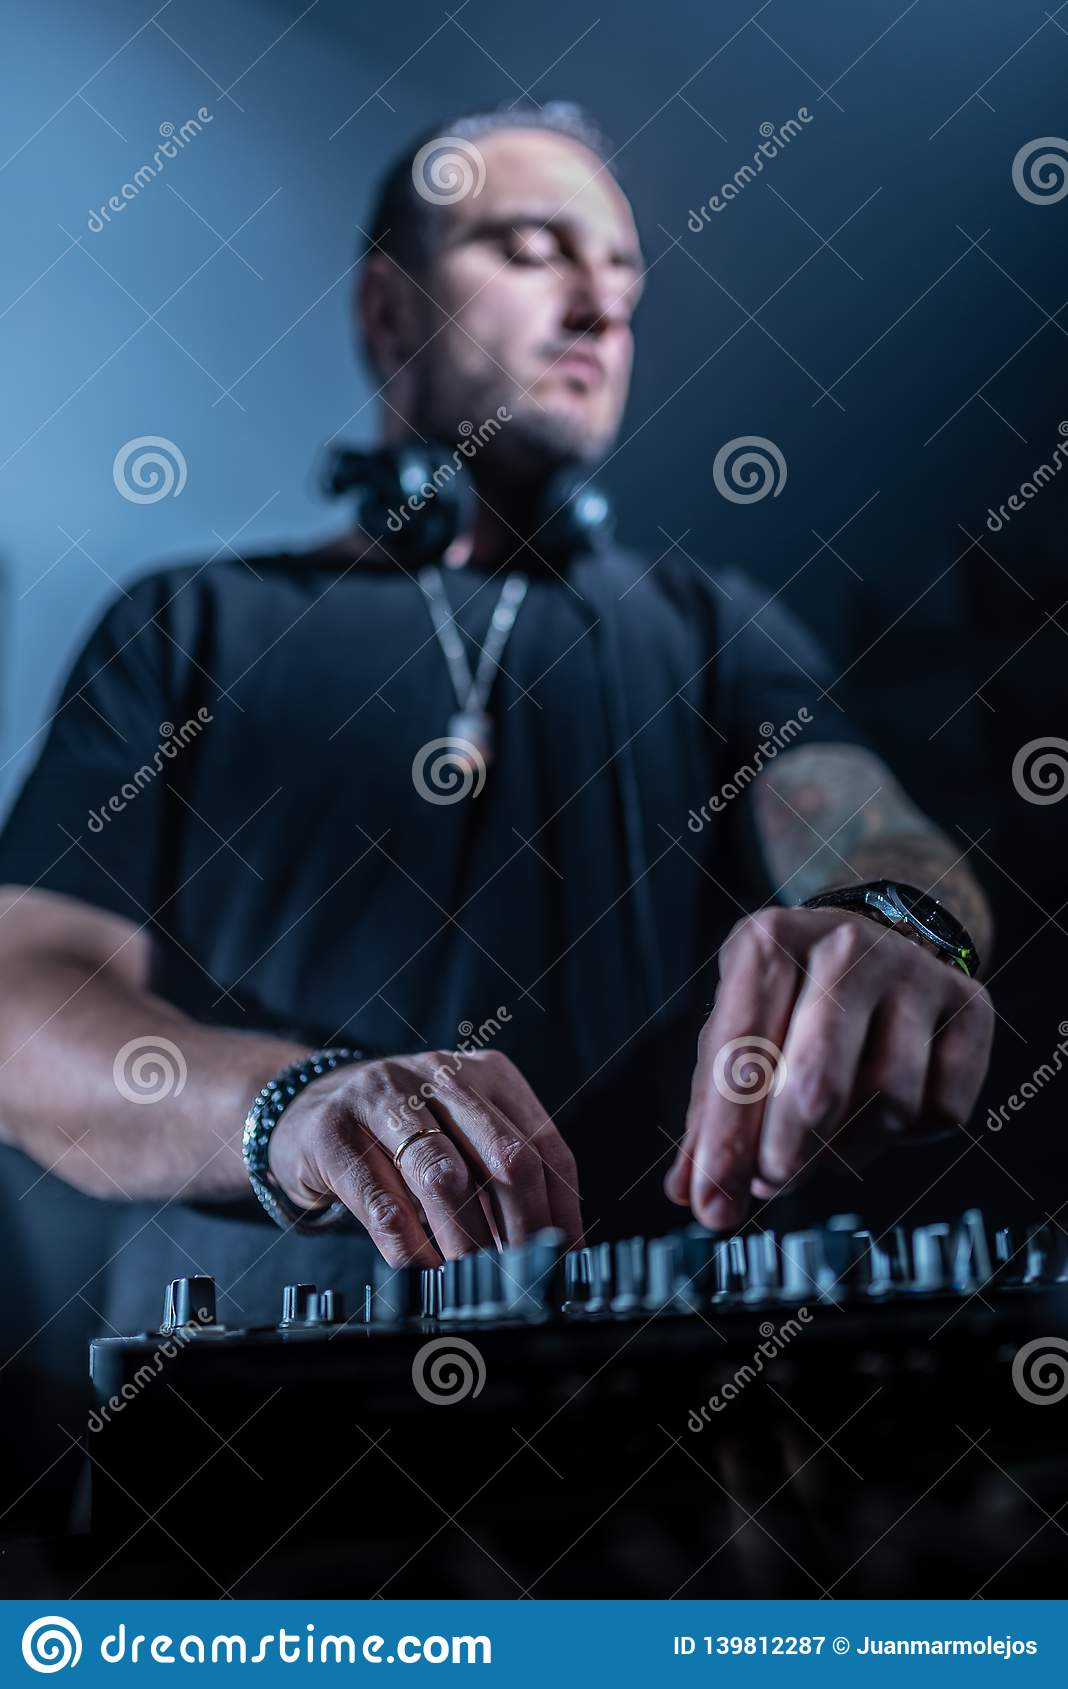 DJ playing house and techno music in a night club. Mixing and controlling the music